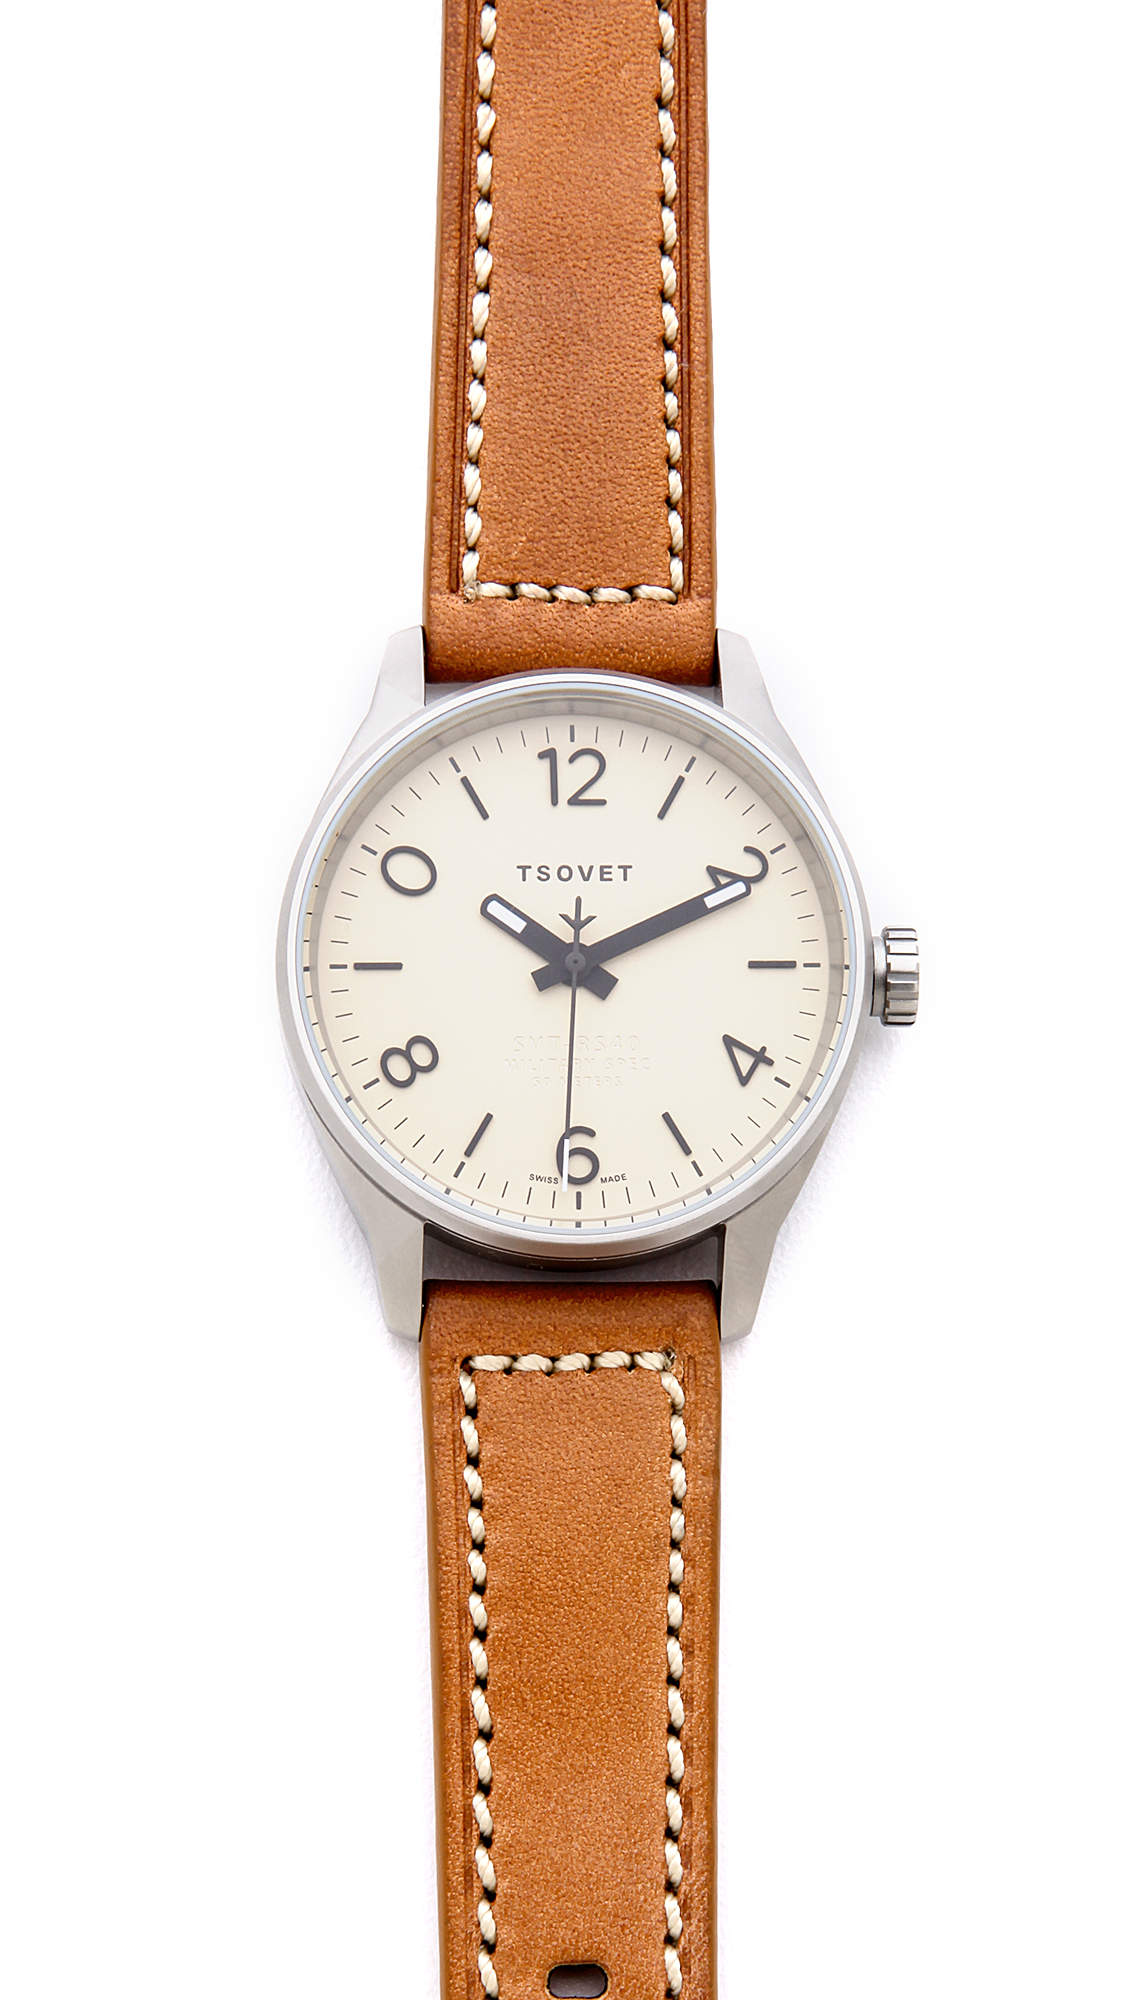 Tsovet svt rs40 40mm watch in brown for men lyst for Watches 40mm